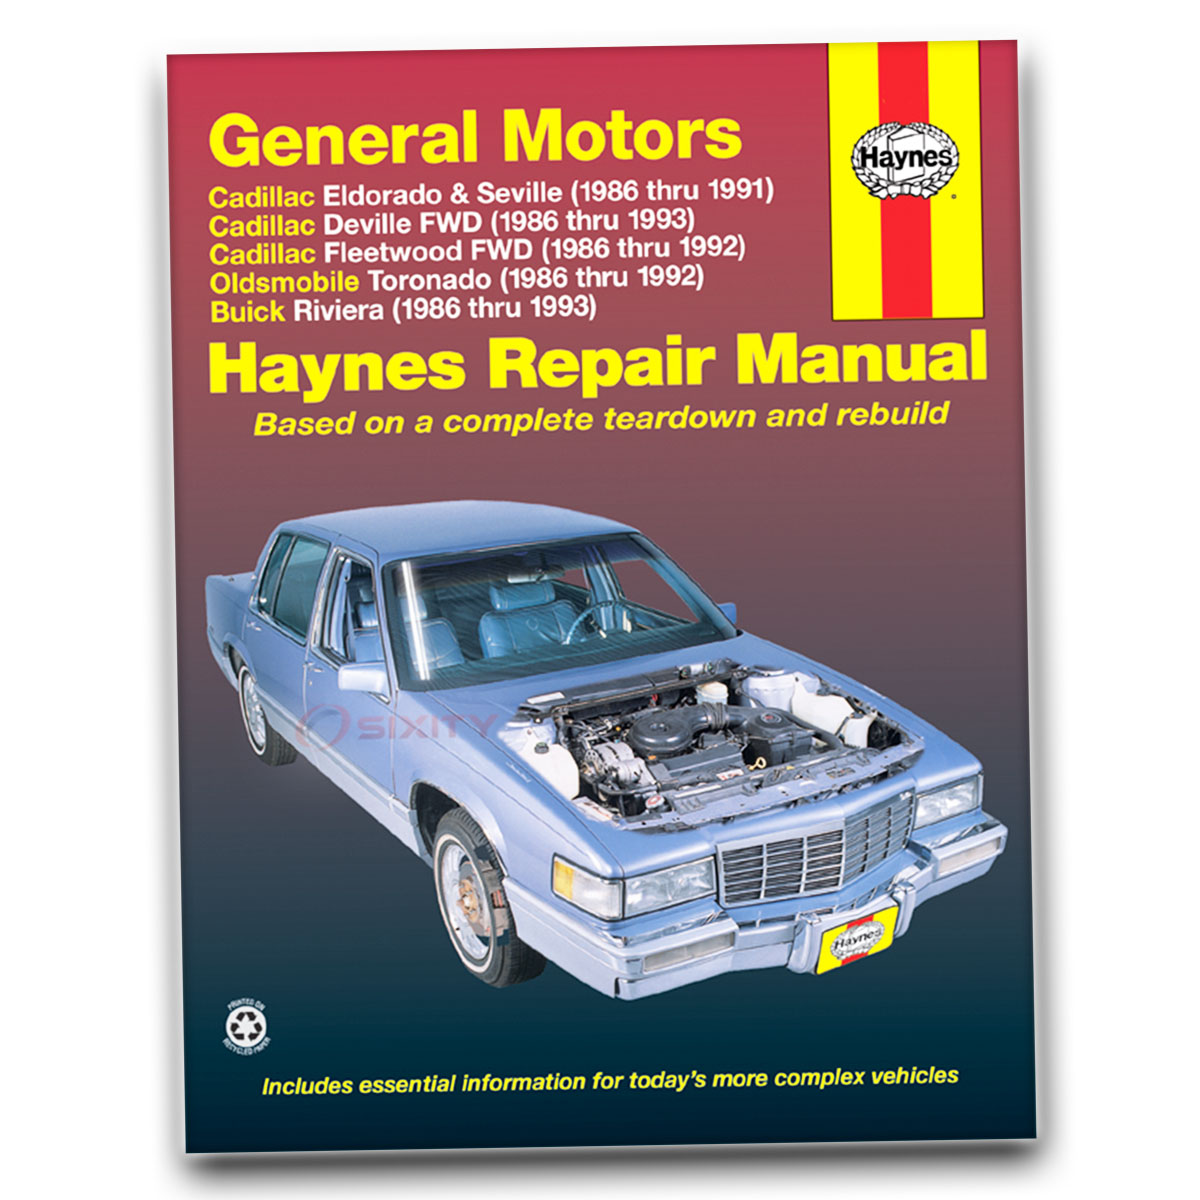 1993 cadillac deville repair manual rh 1993 cadillac deville repair manual tempower us 1994 Cadillac Seville 1991 Cadillac Seville